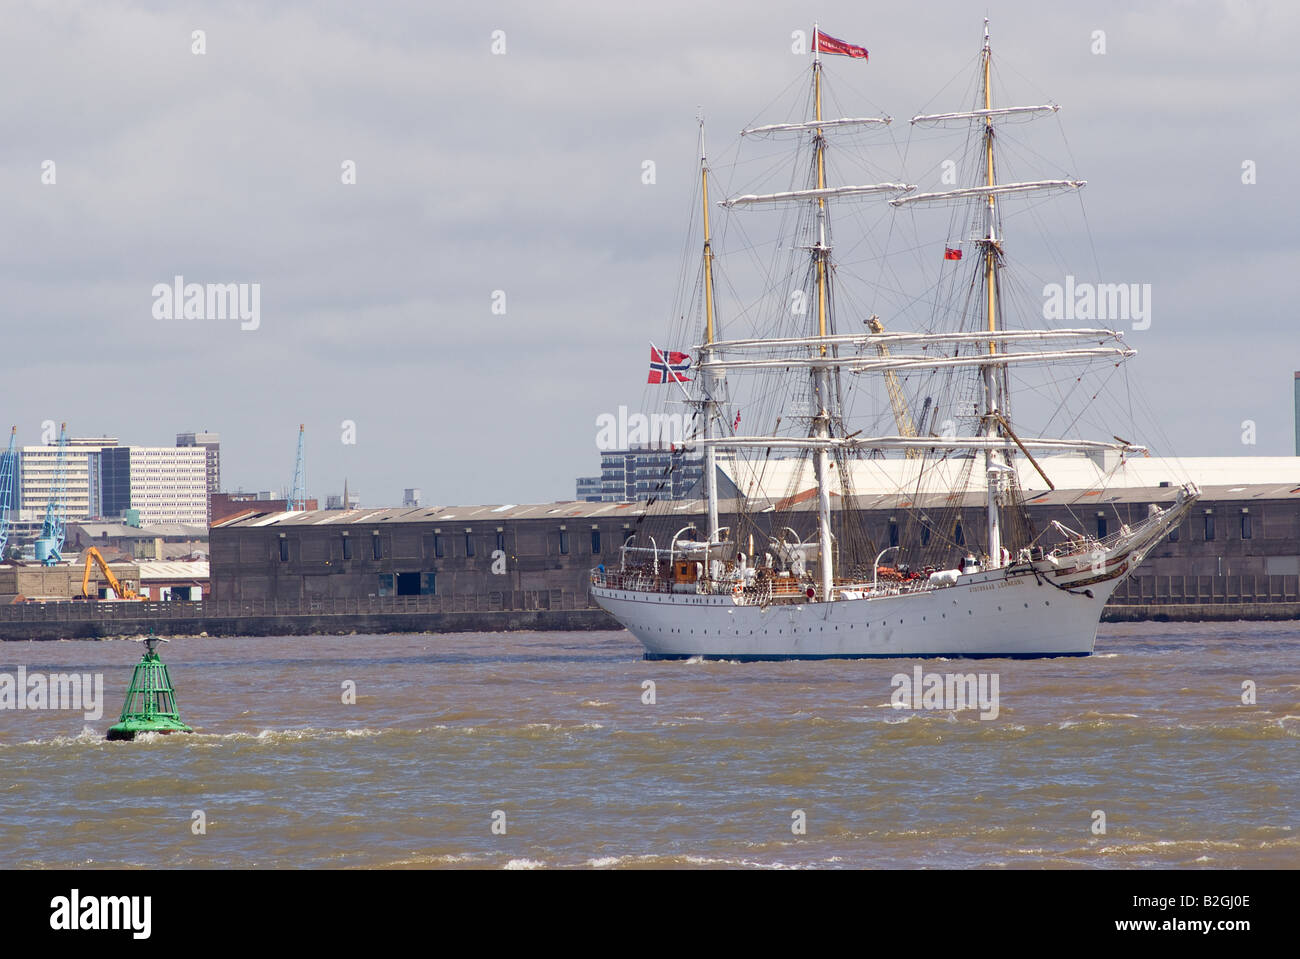 The Norwegian Tall Ship Statsraad Lehmkuhl on Her Way to the Start of the Tall Ships Race River Mersey Liverpool - Stock Image